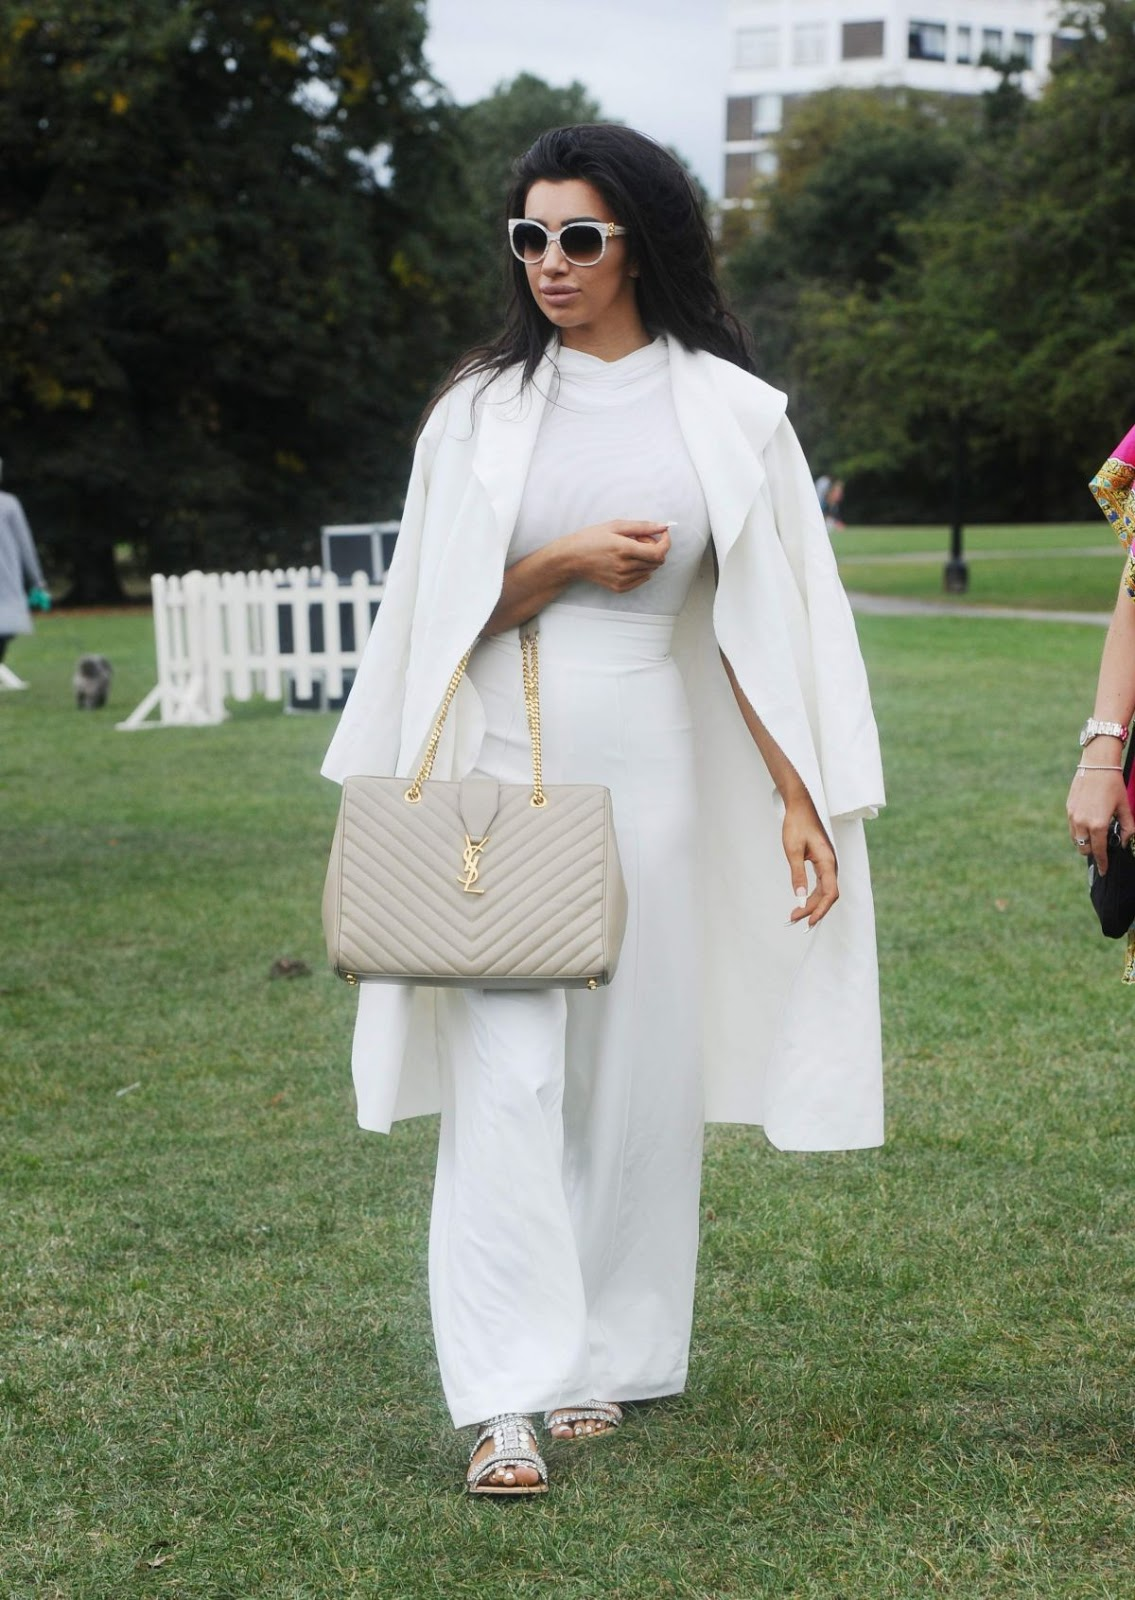 HQ Photos of Chloe Khan At Pupaid Anti Puppy Farming Event In Primrose Hill